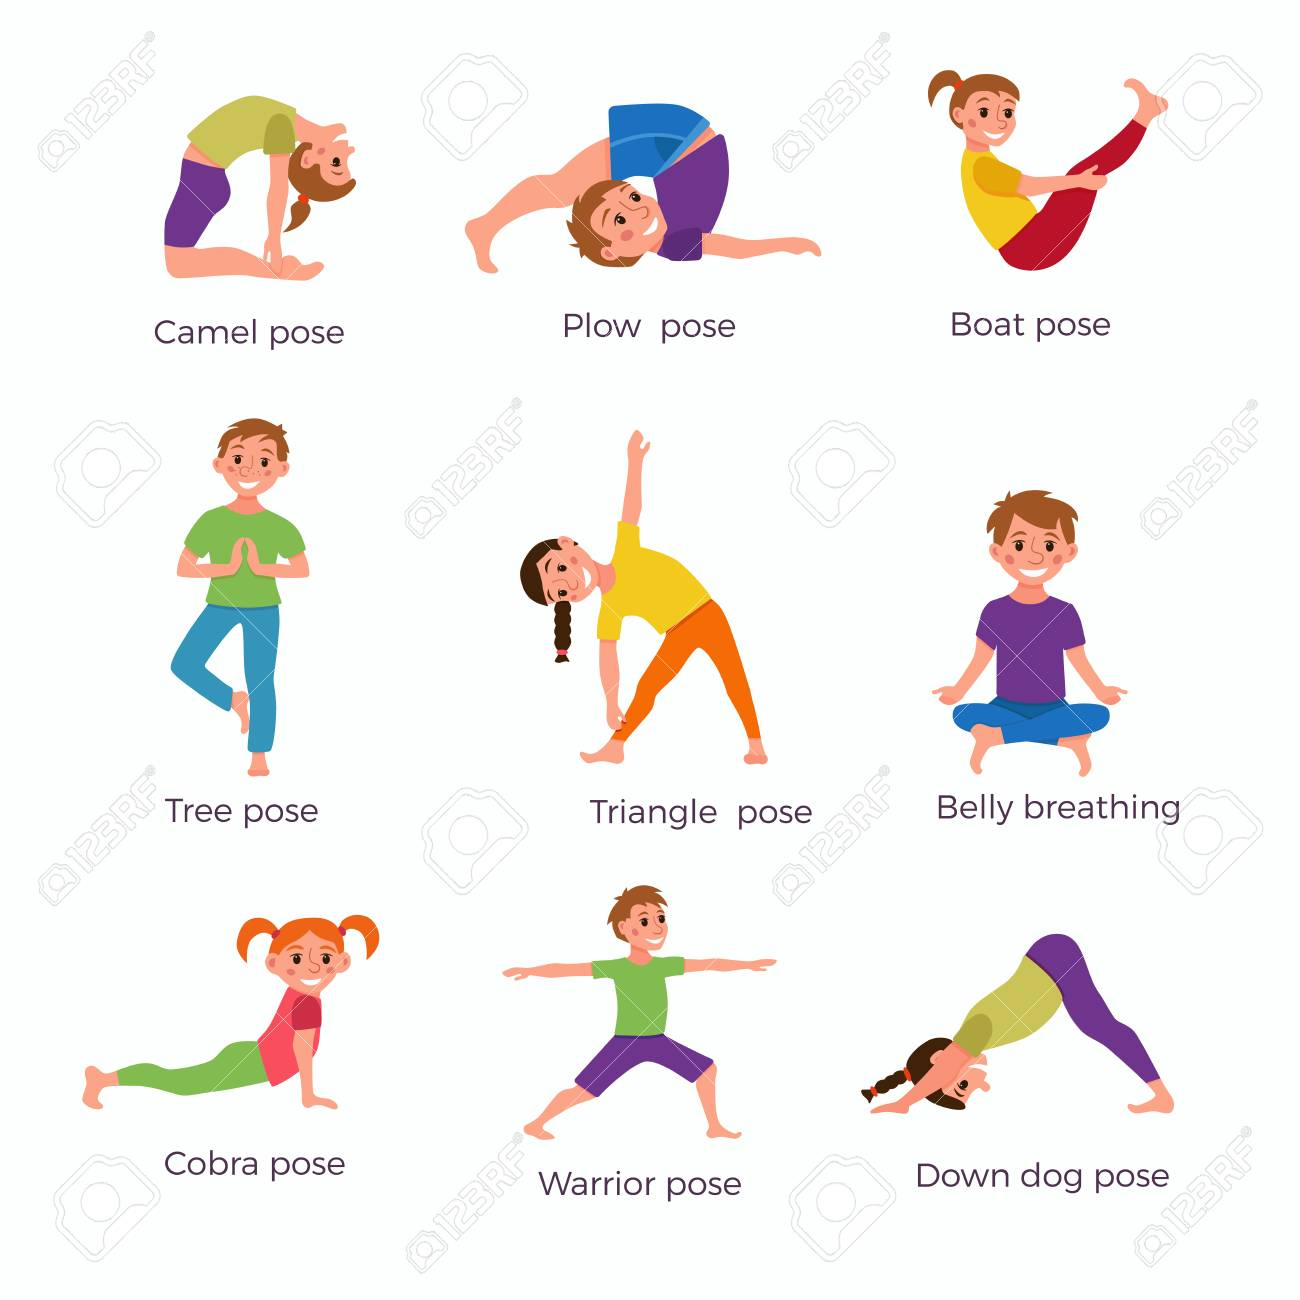 Yoga Kids Poses Set Royalty Free Cliparts Vectors And Stock Illustration Image 83529610